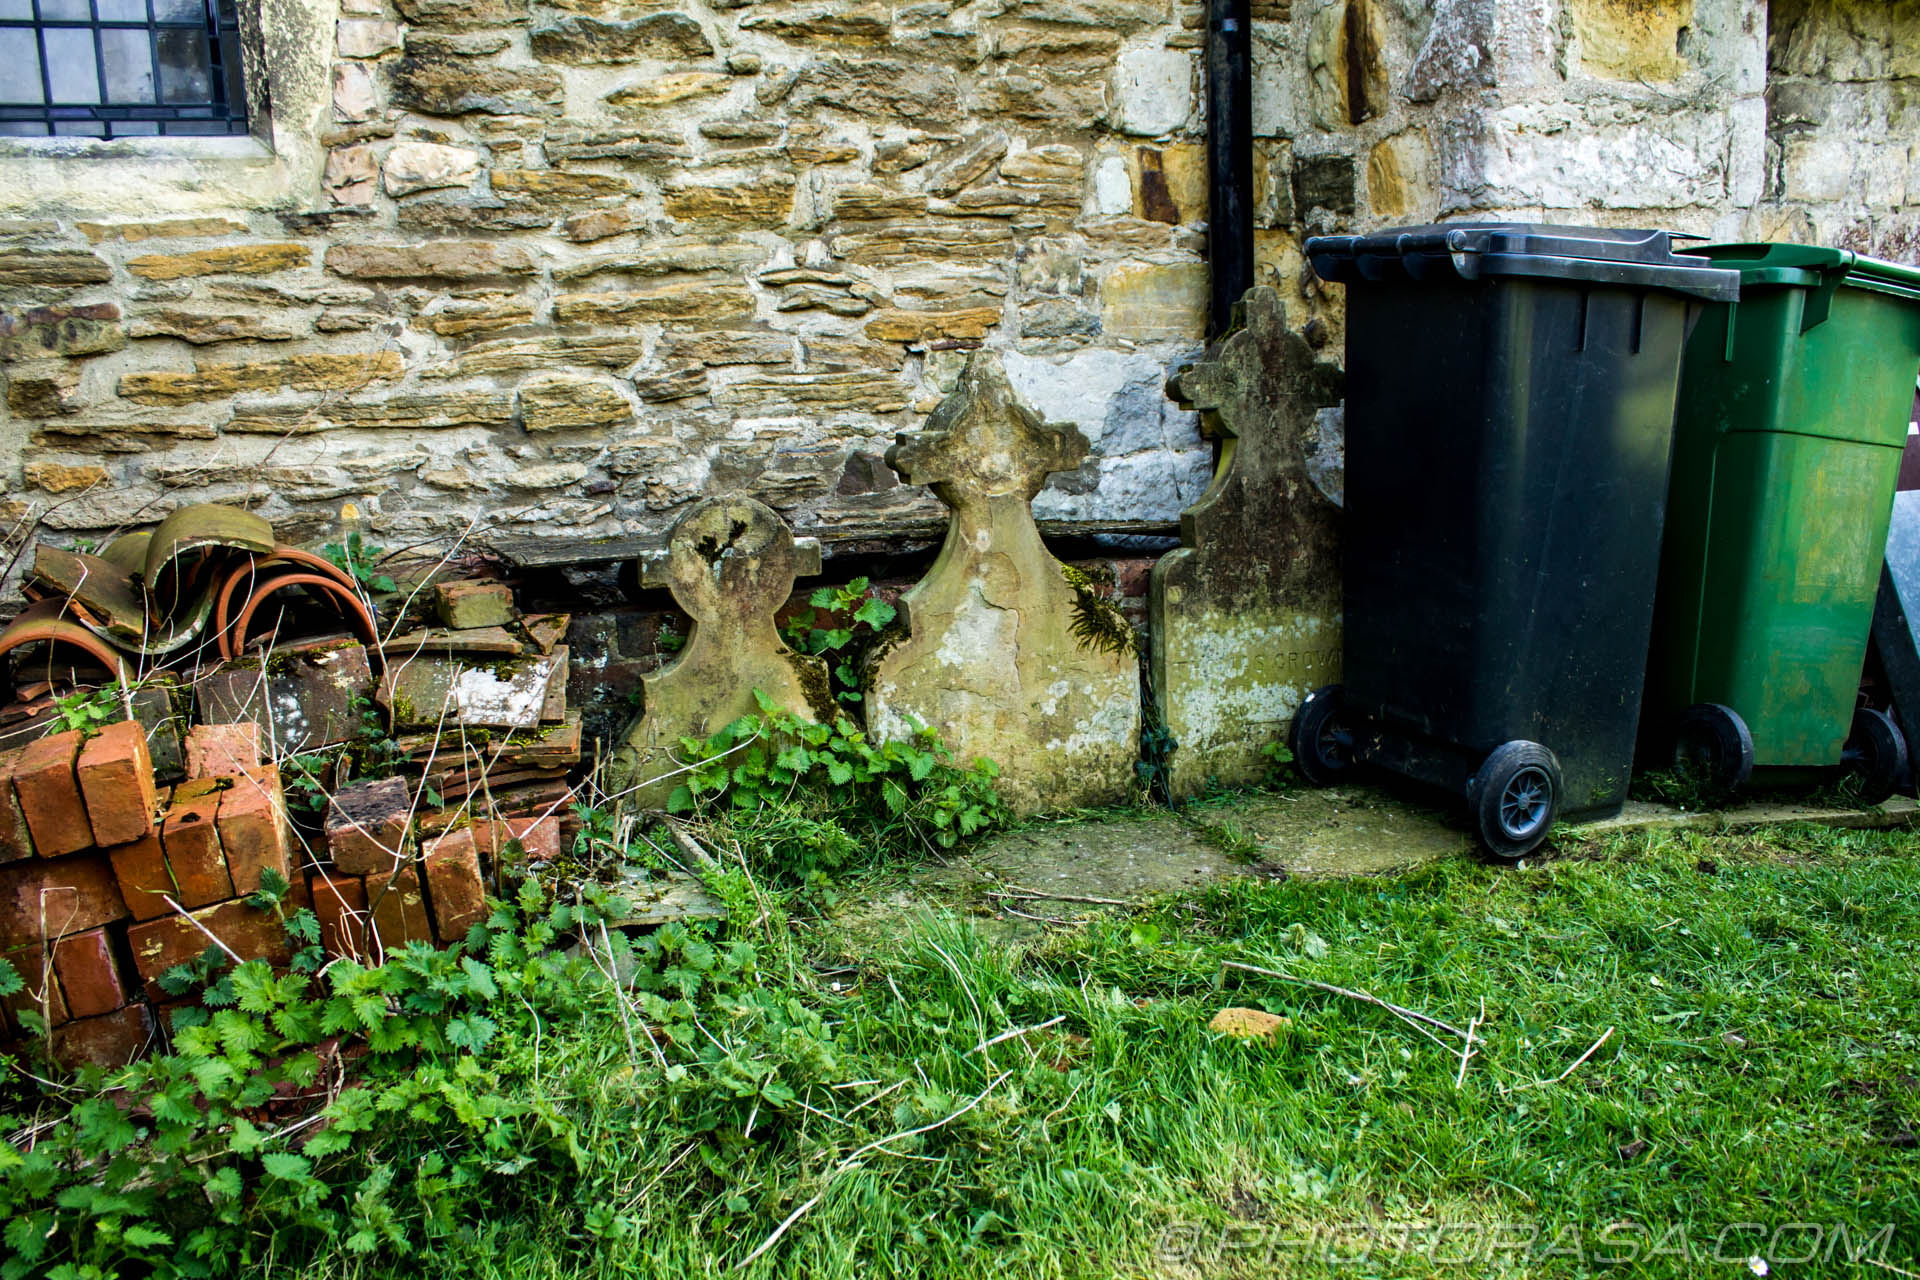 http://photorasa.com/saints-church-staplehurst-kent/graves-and-rubbish-bins/